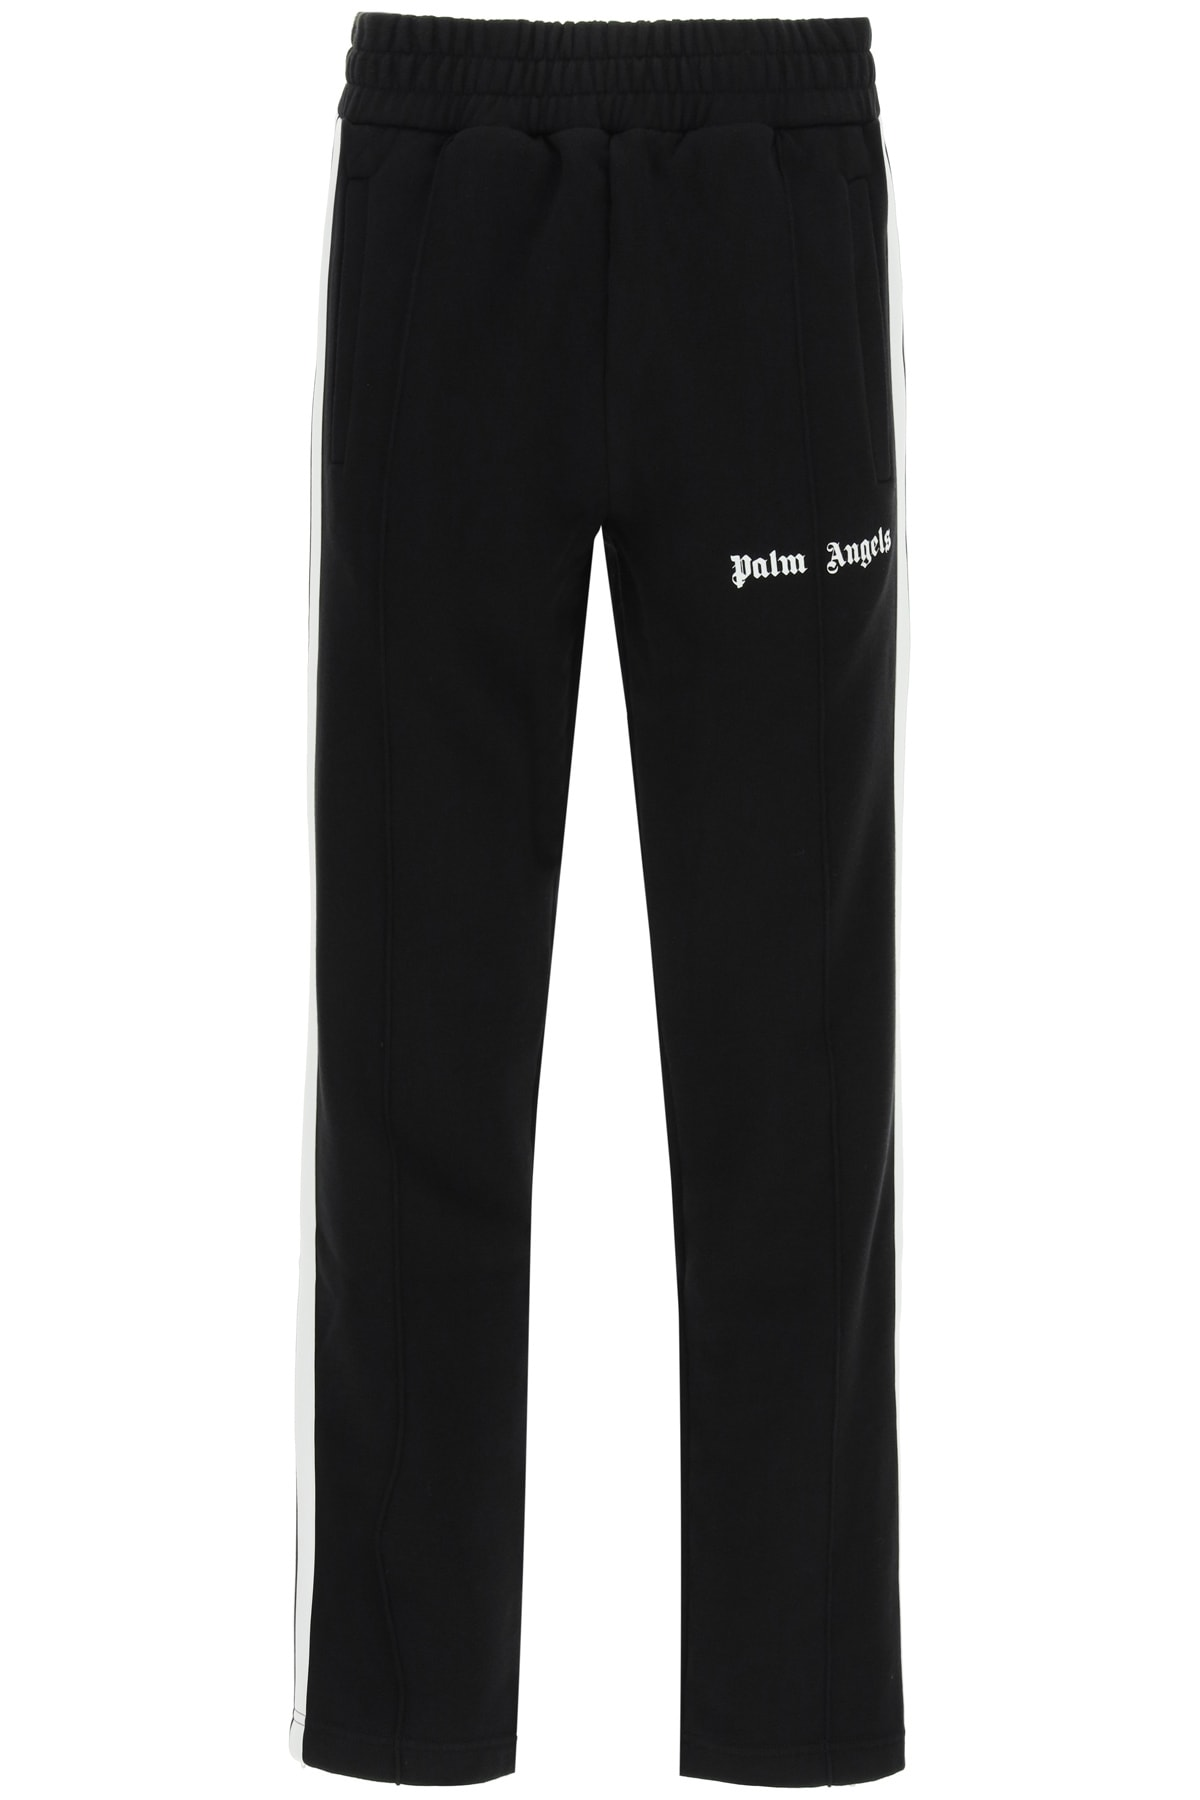 Palm Angels JOGGING TROUSERS WITH BANDS